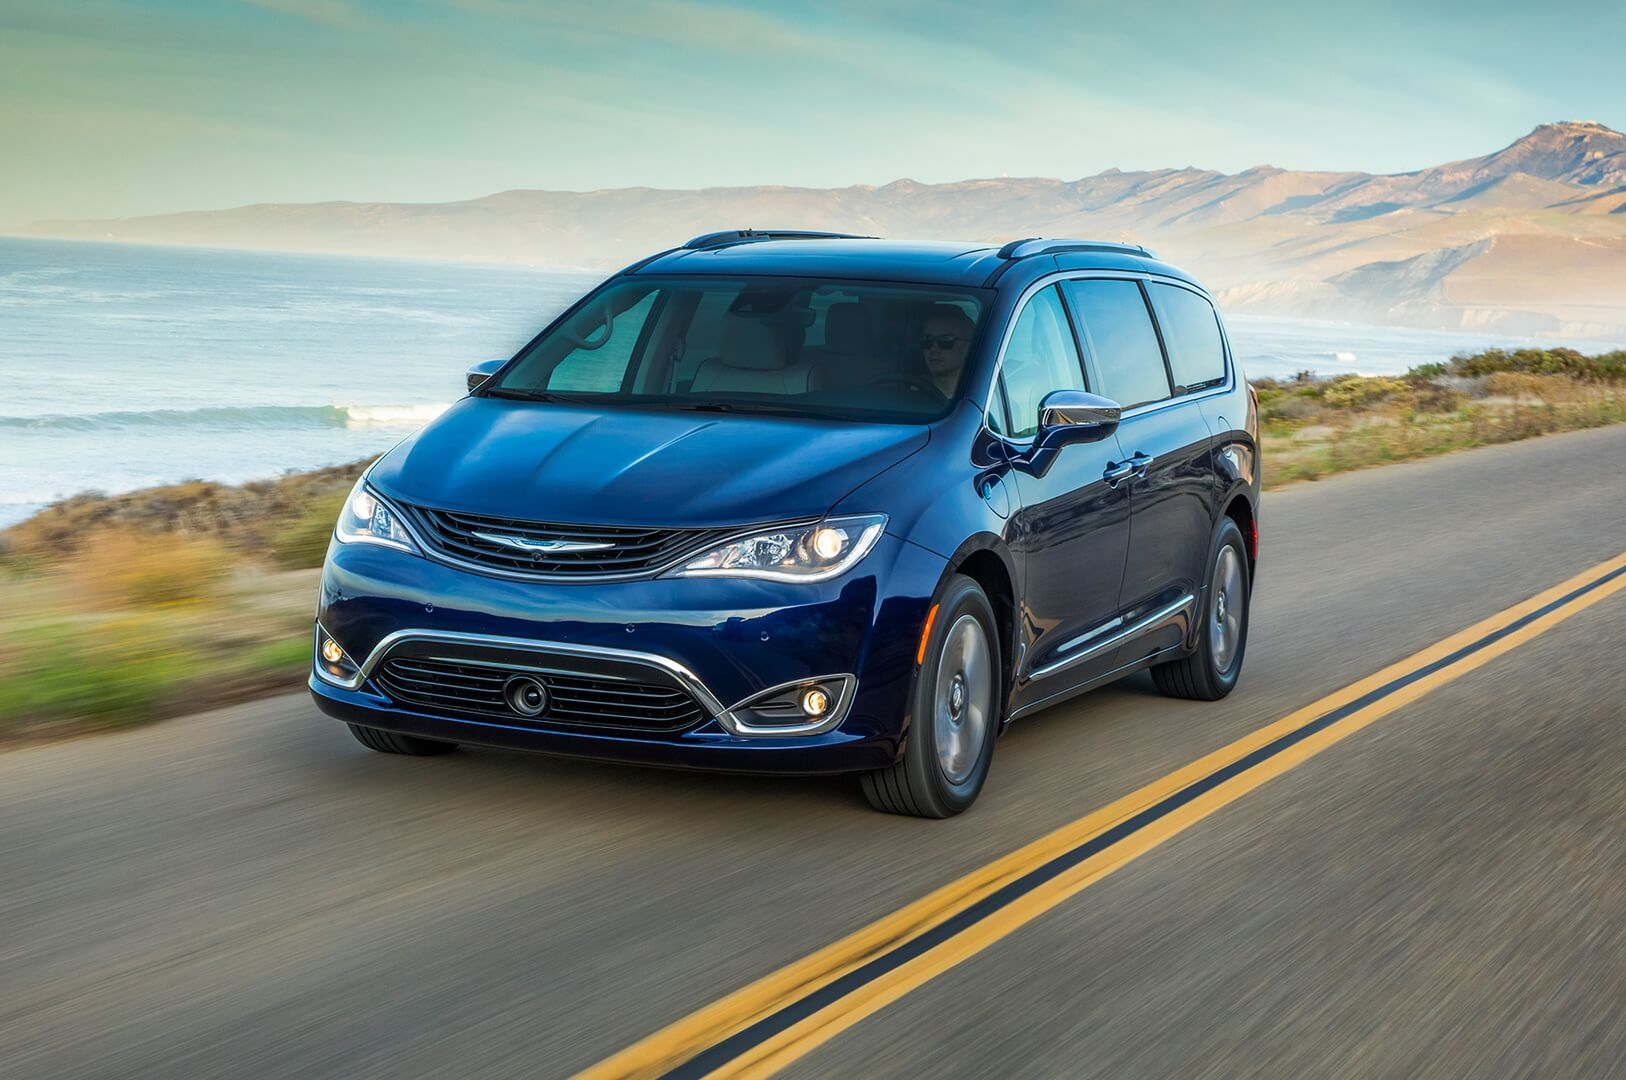 Плагин-гибрид Chrysler Pacifica